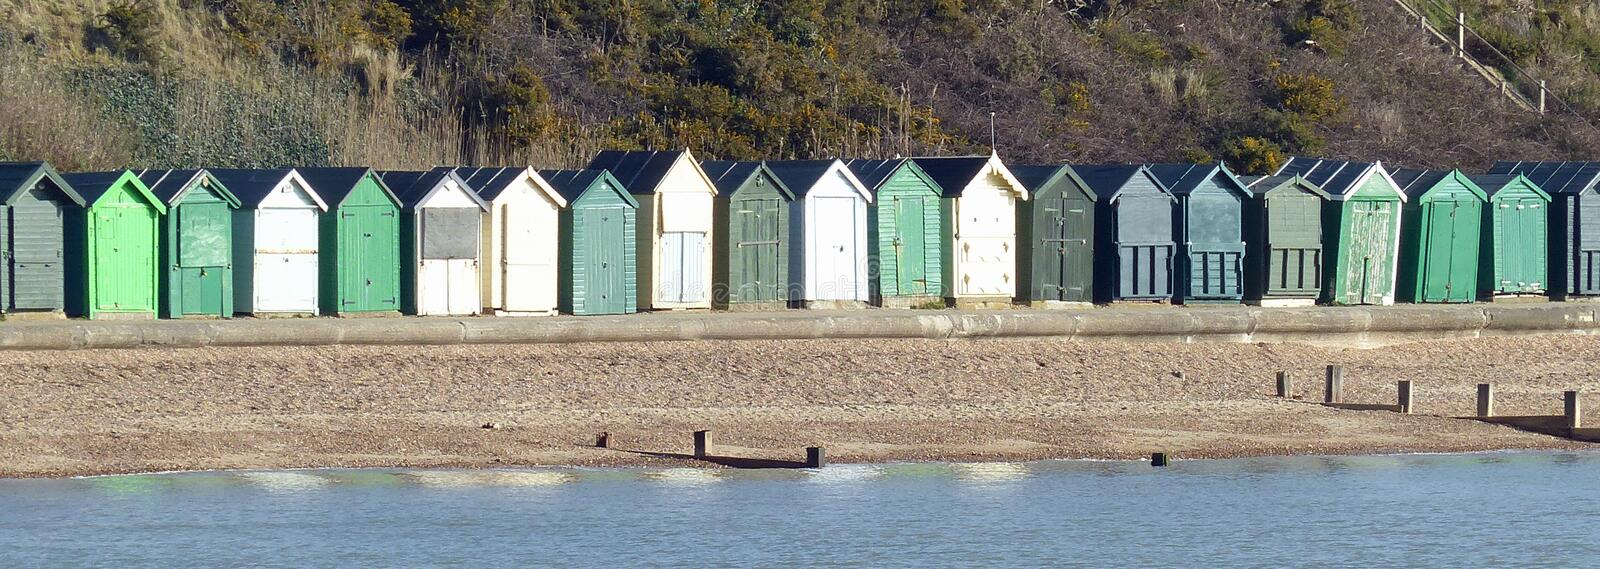 Beach huts, Hampshire royalty free stock images